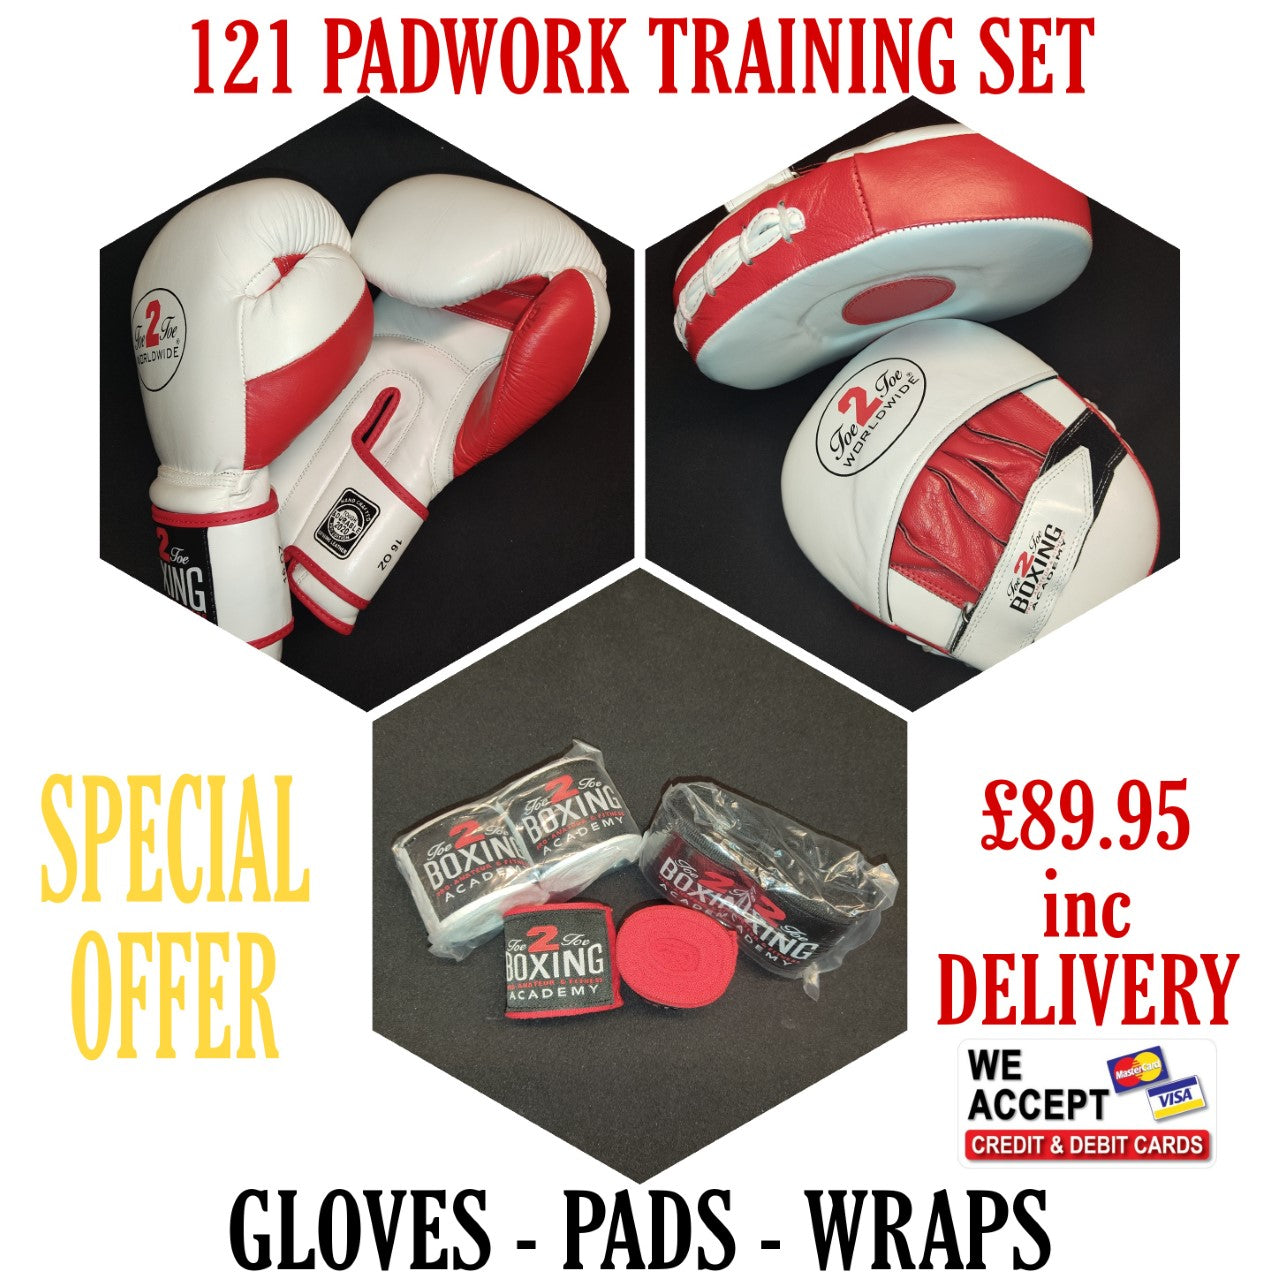 COACH & STUDENT BOXING SET, 16oz GLOVES, WRAPS FOCUS PADS